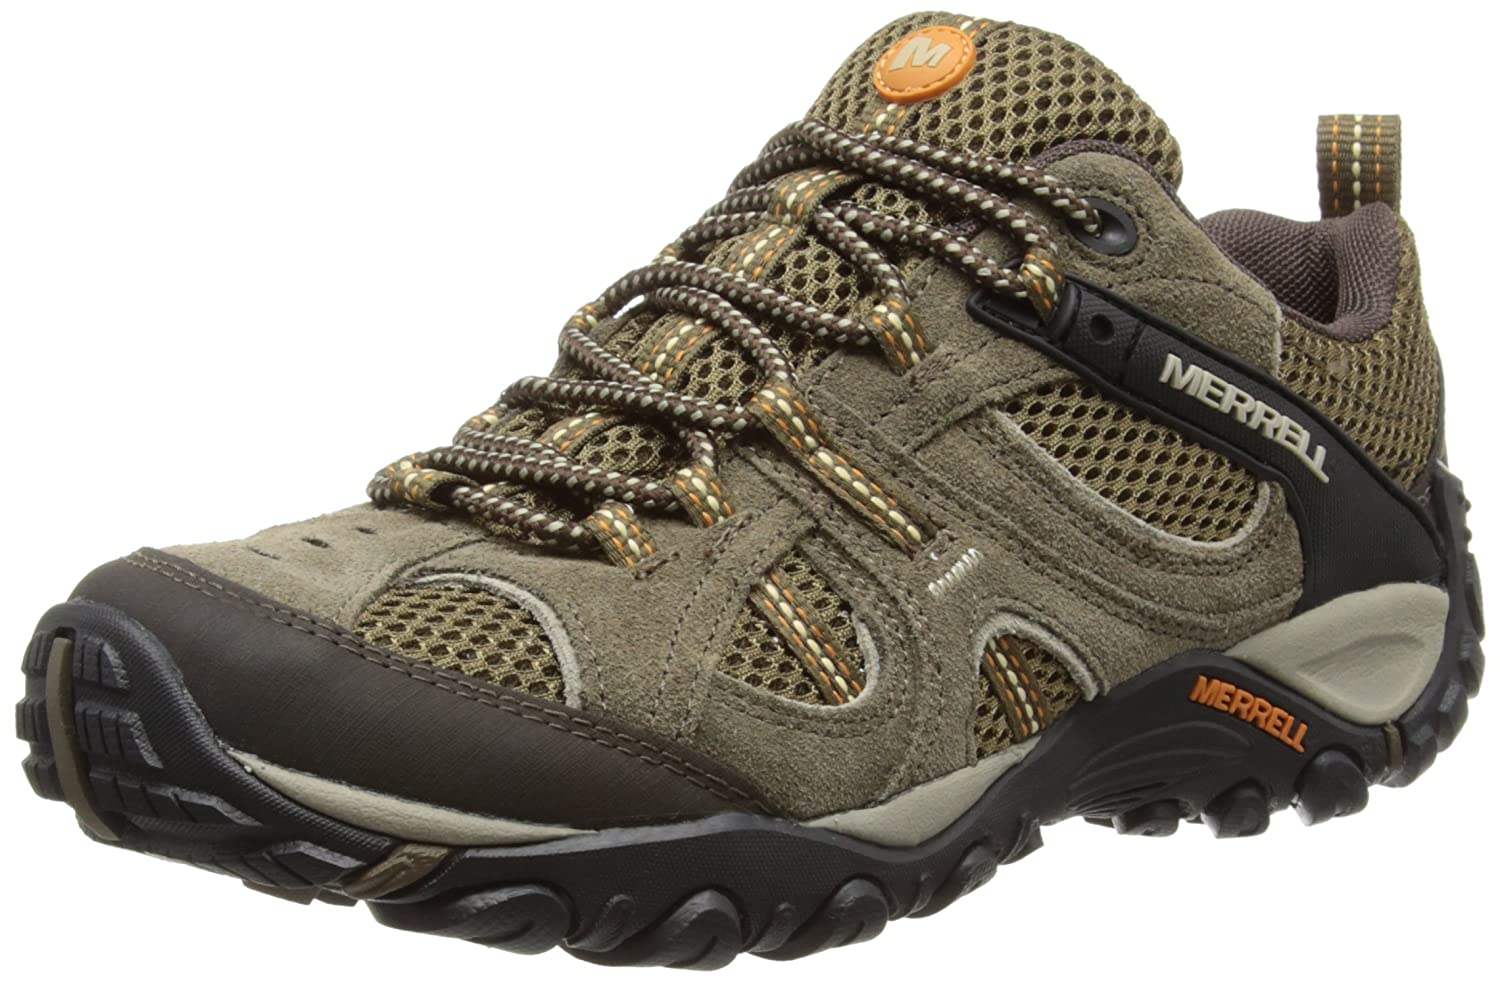 Merrell Yokota Trail Ventilator, Men's Trekking and Hiking Shoes